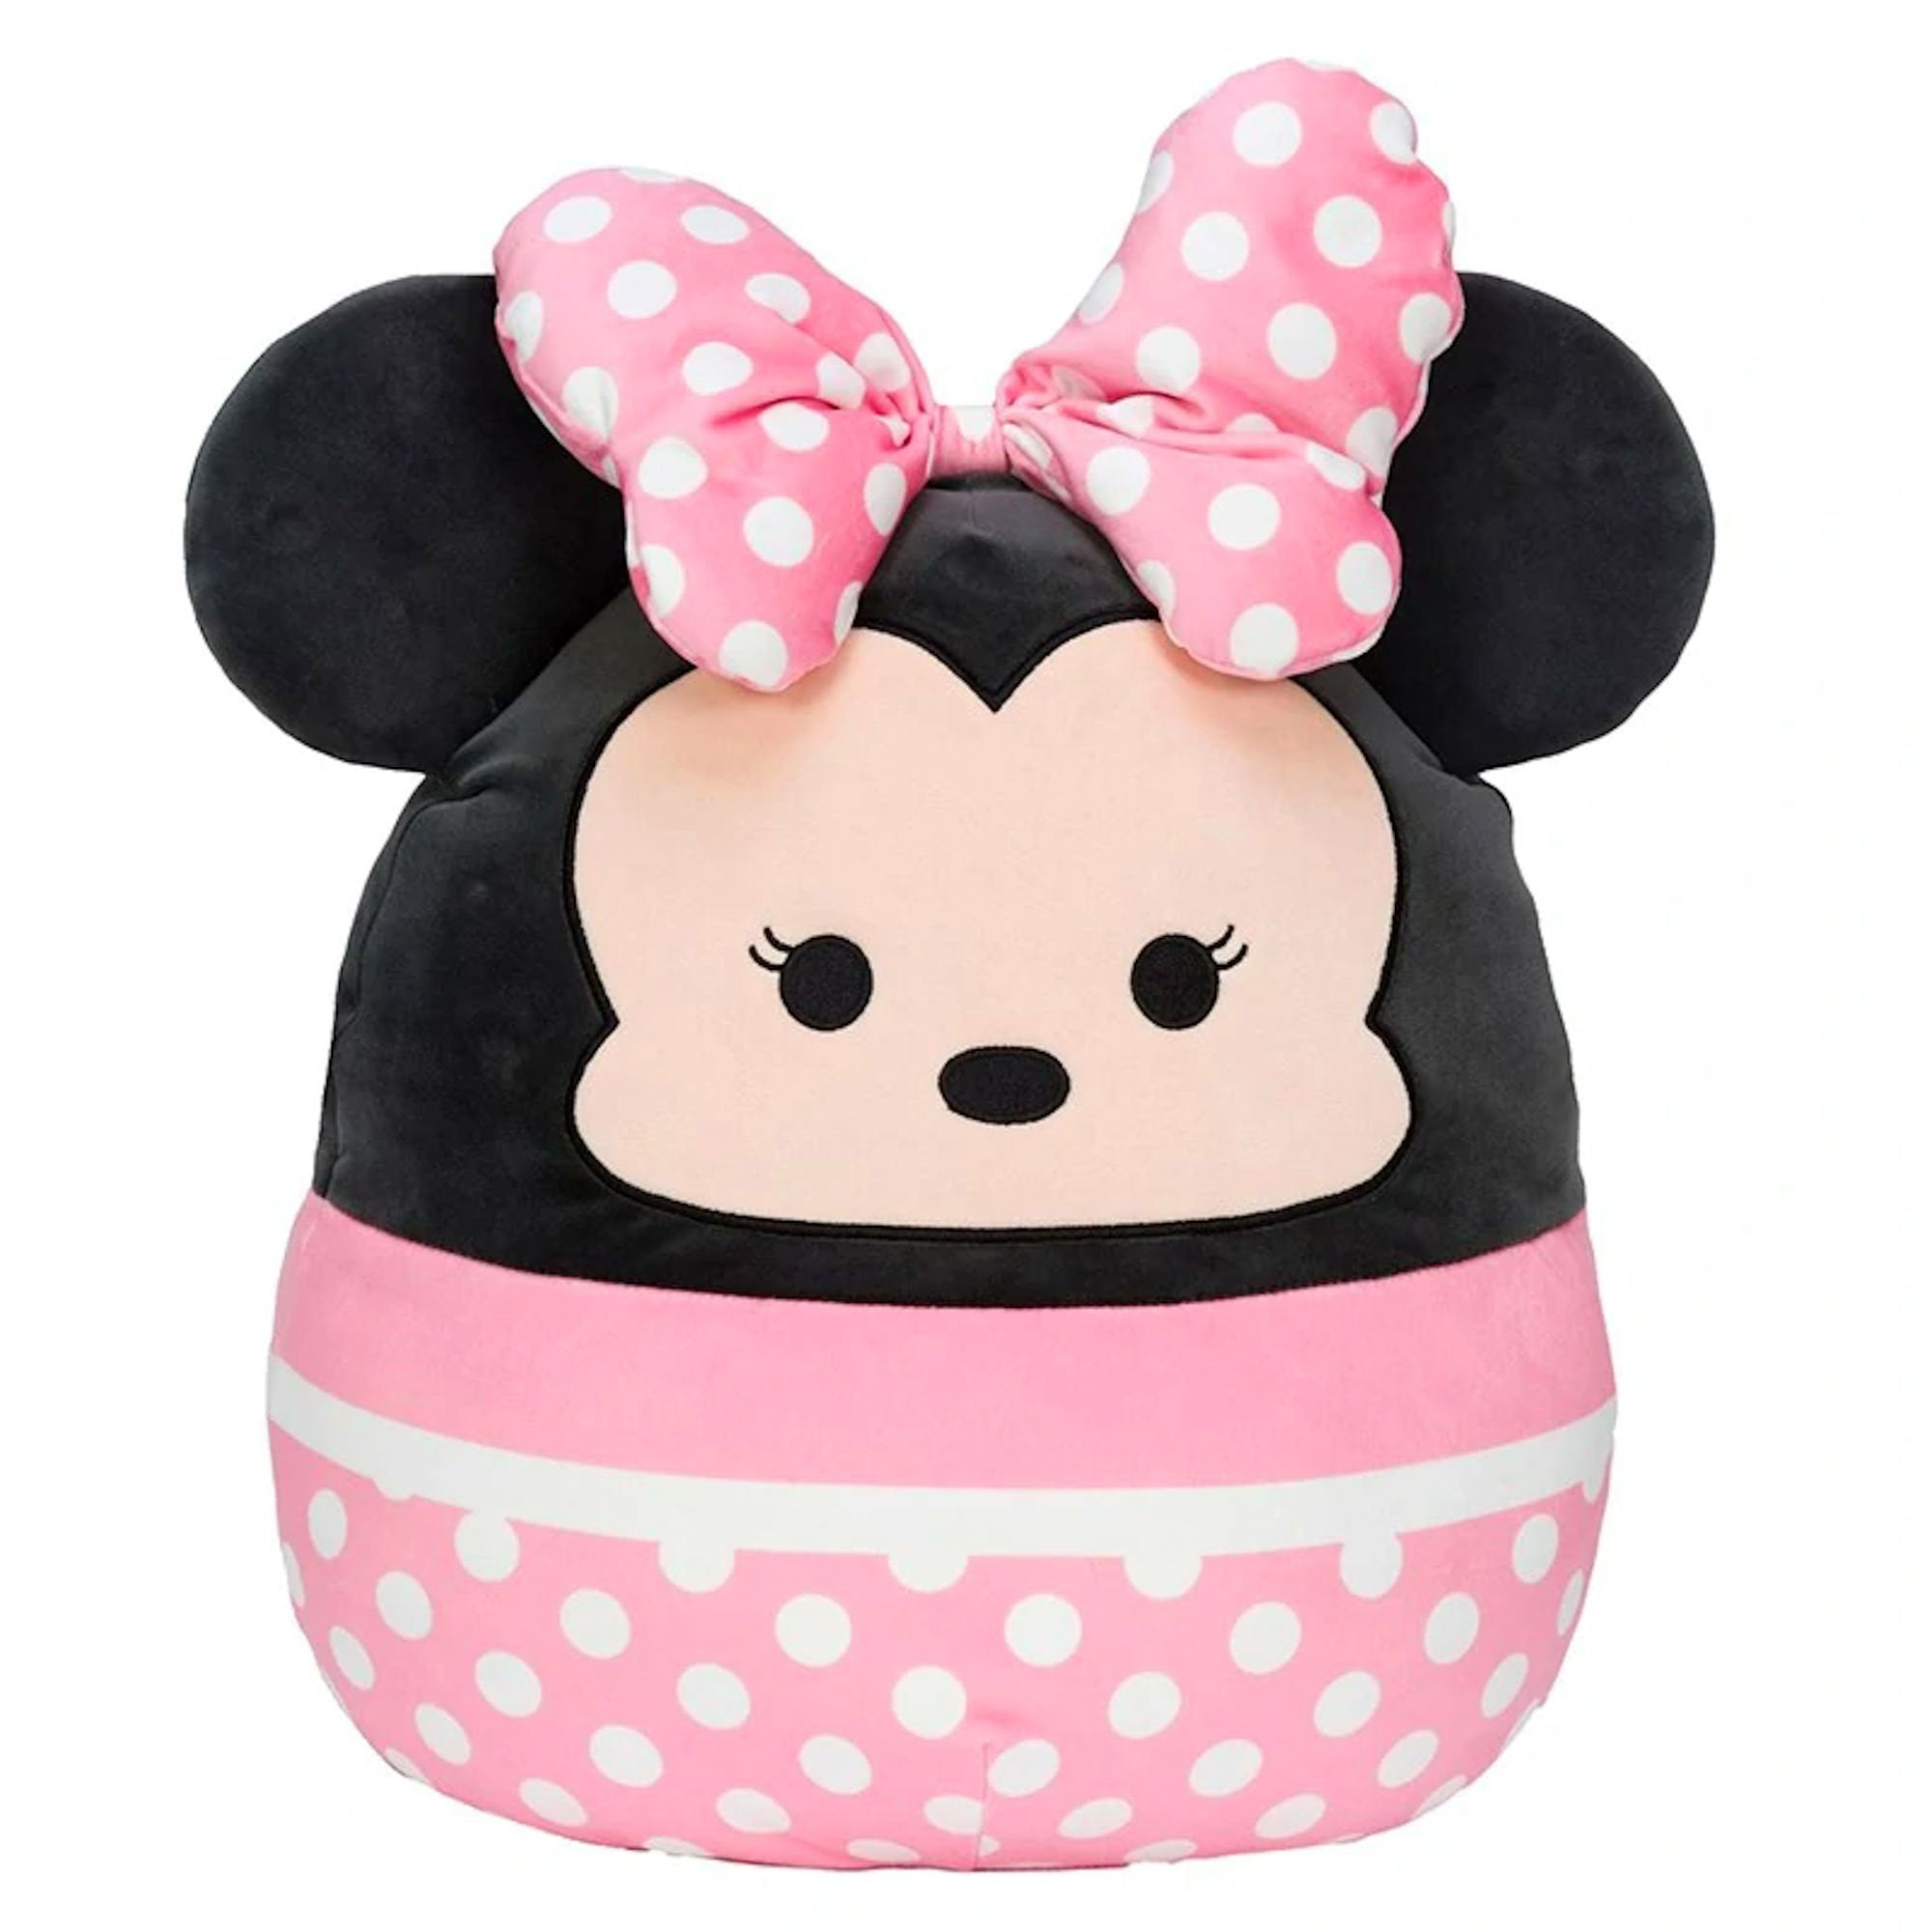 8IN Minnie Mouse Squishmallow